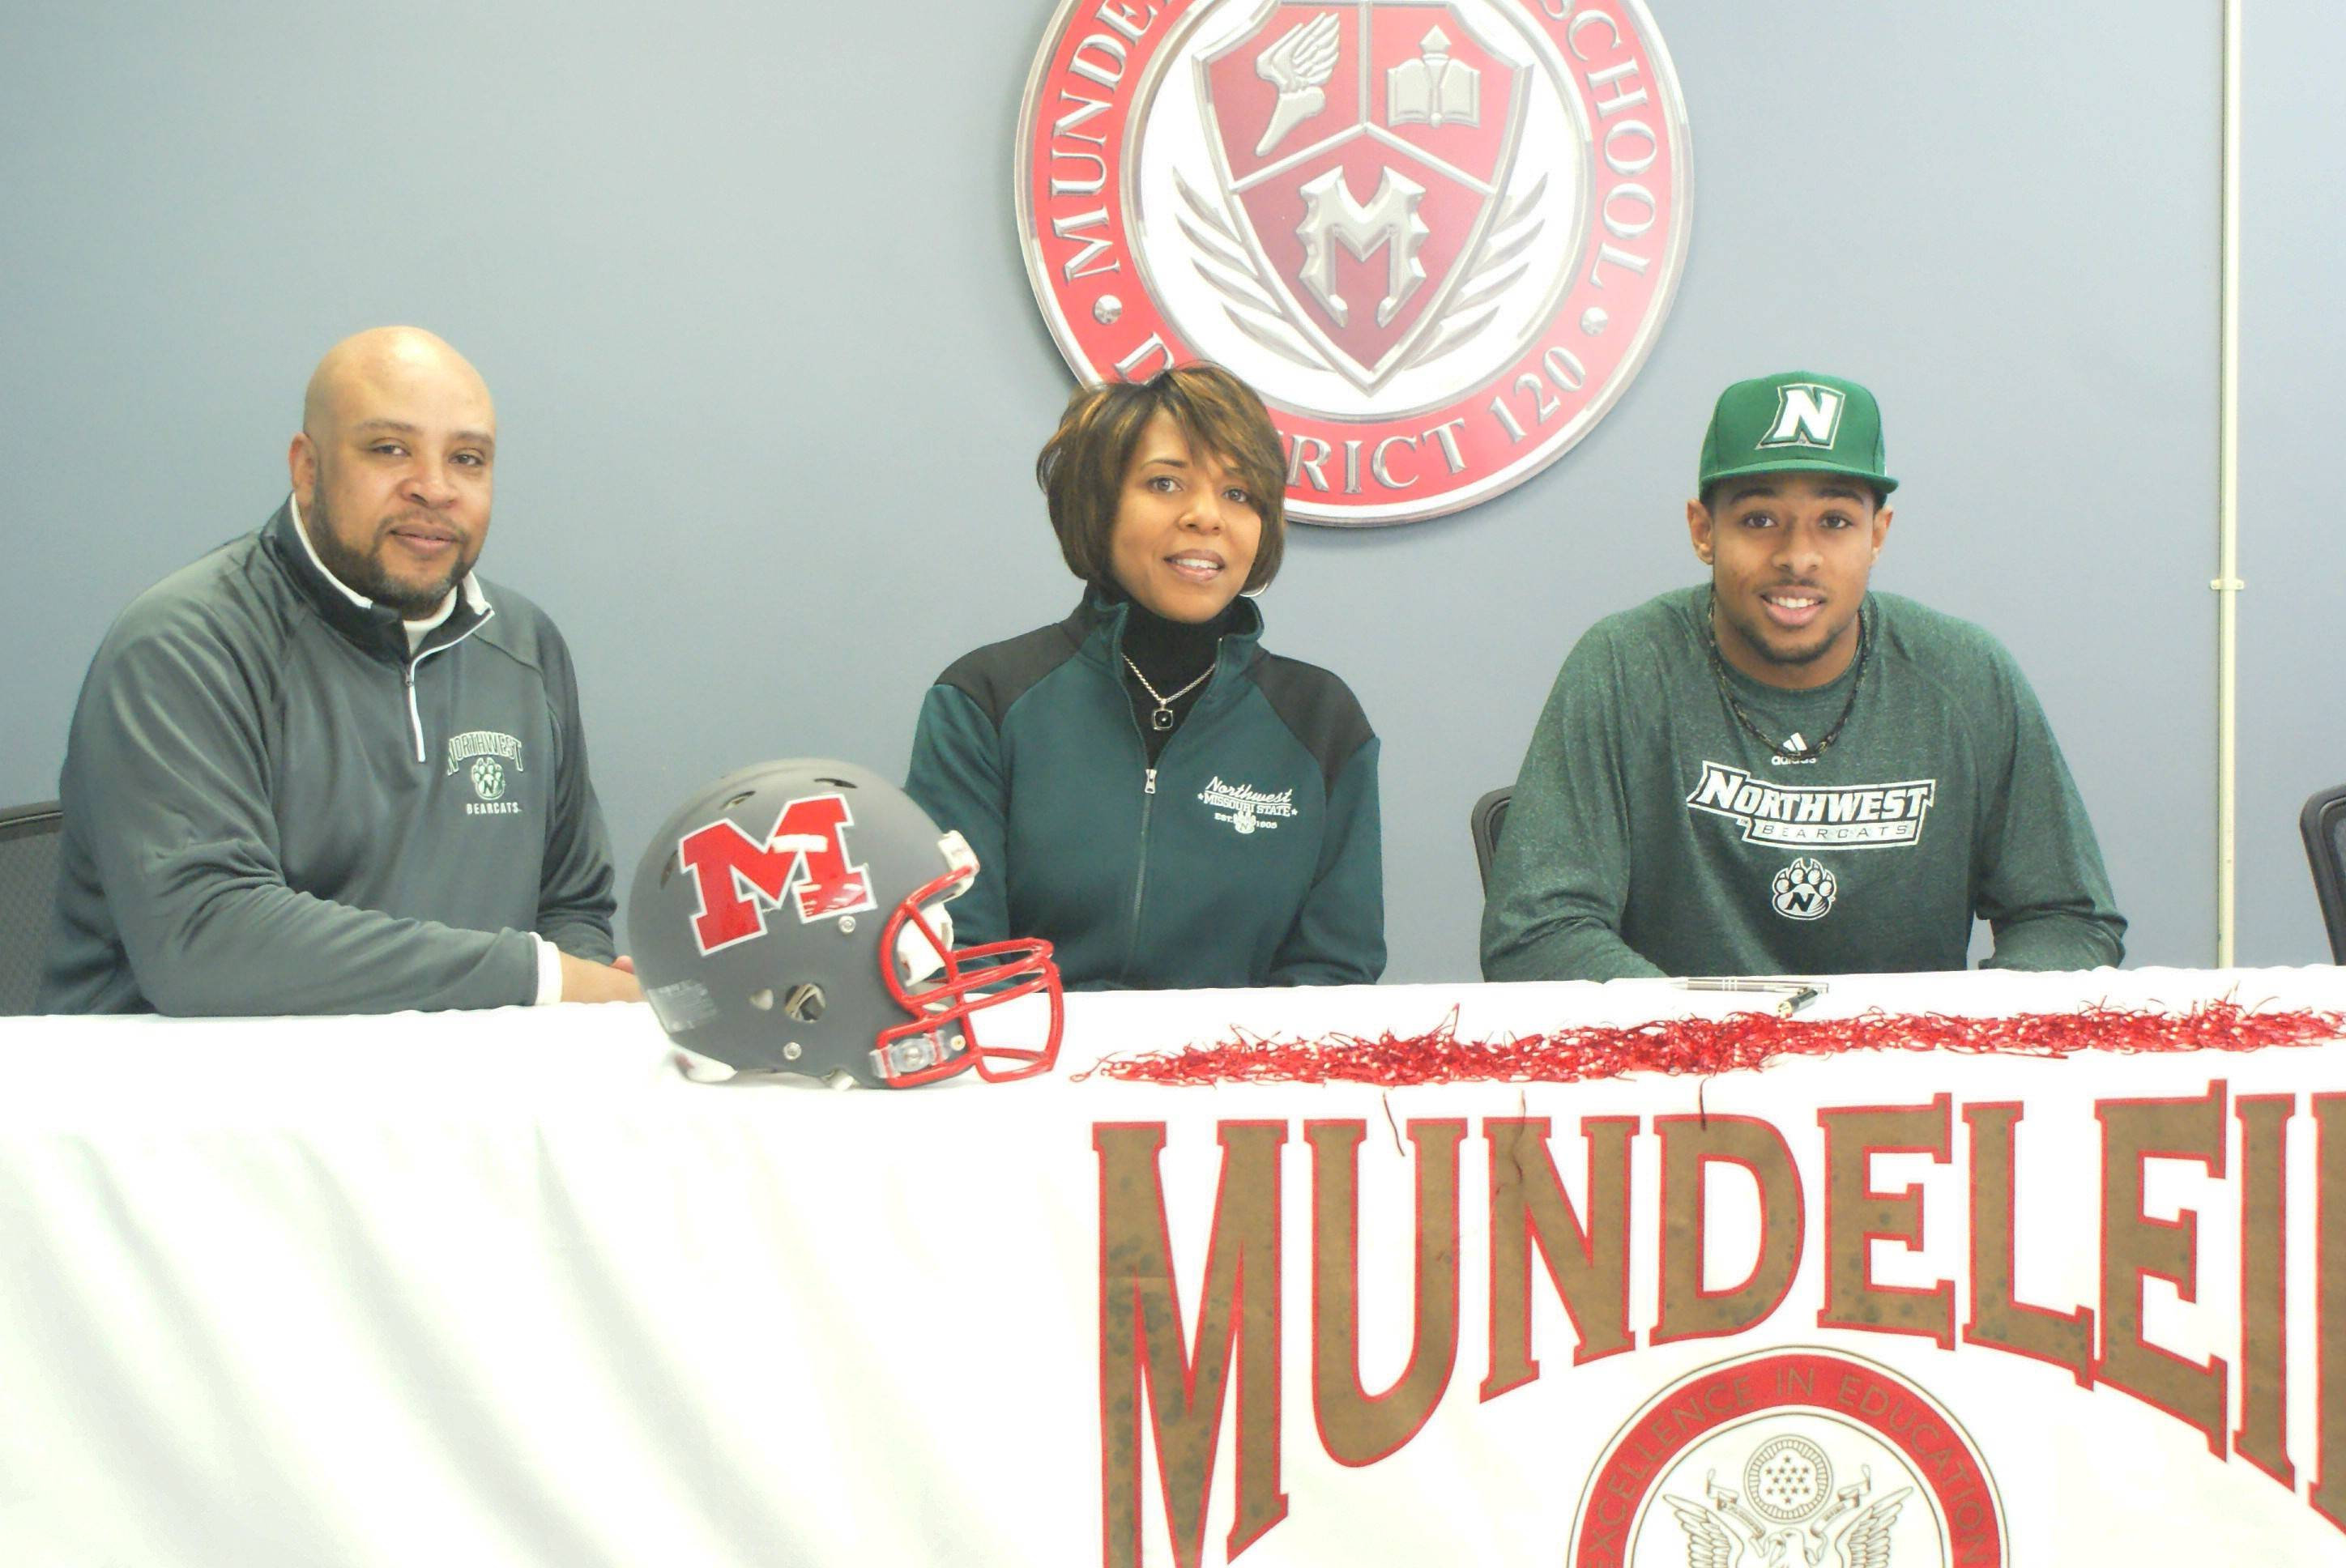 Mundelein senior Emanuel Jones poses with his parents, Vince and Dietra, after signing to play football with Northwest Missouri State University.